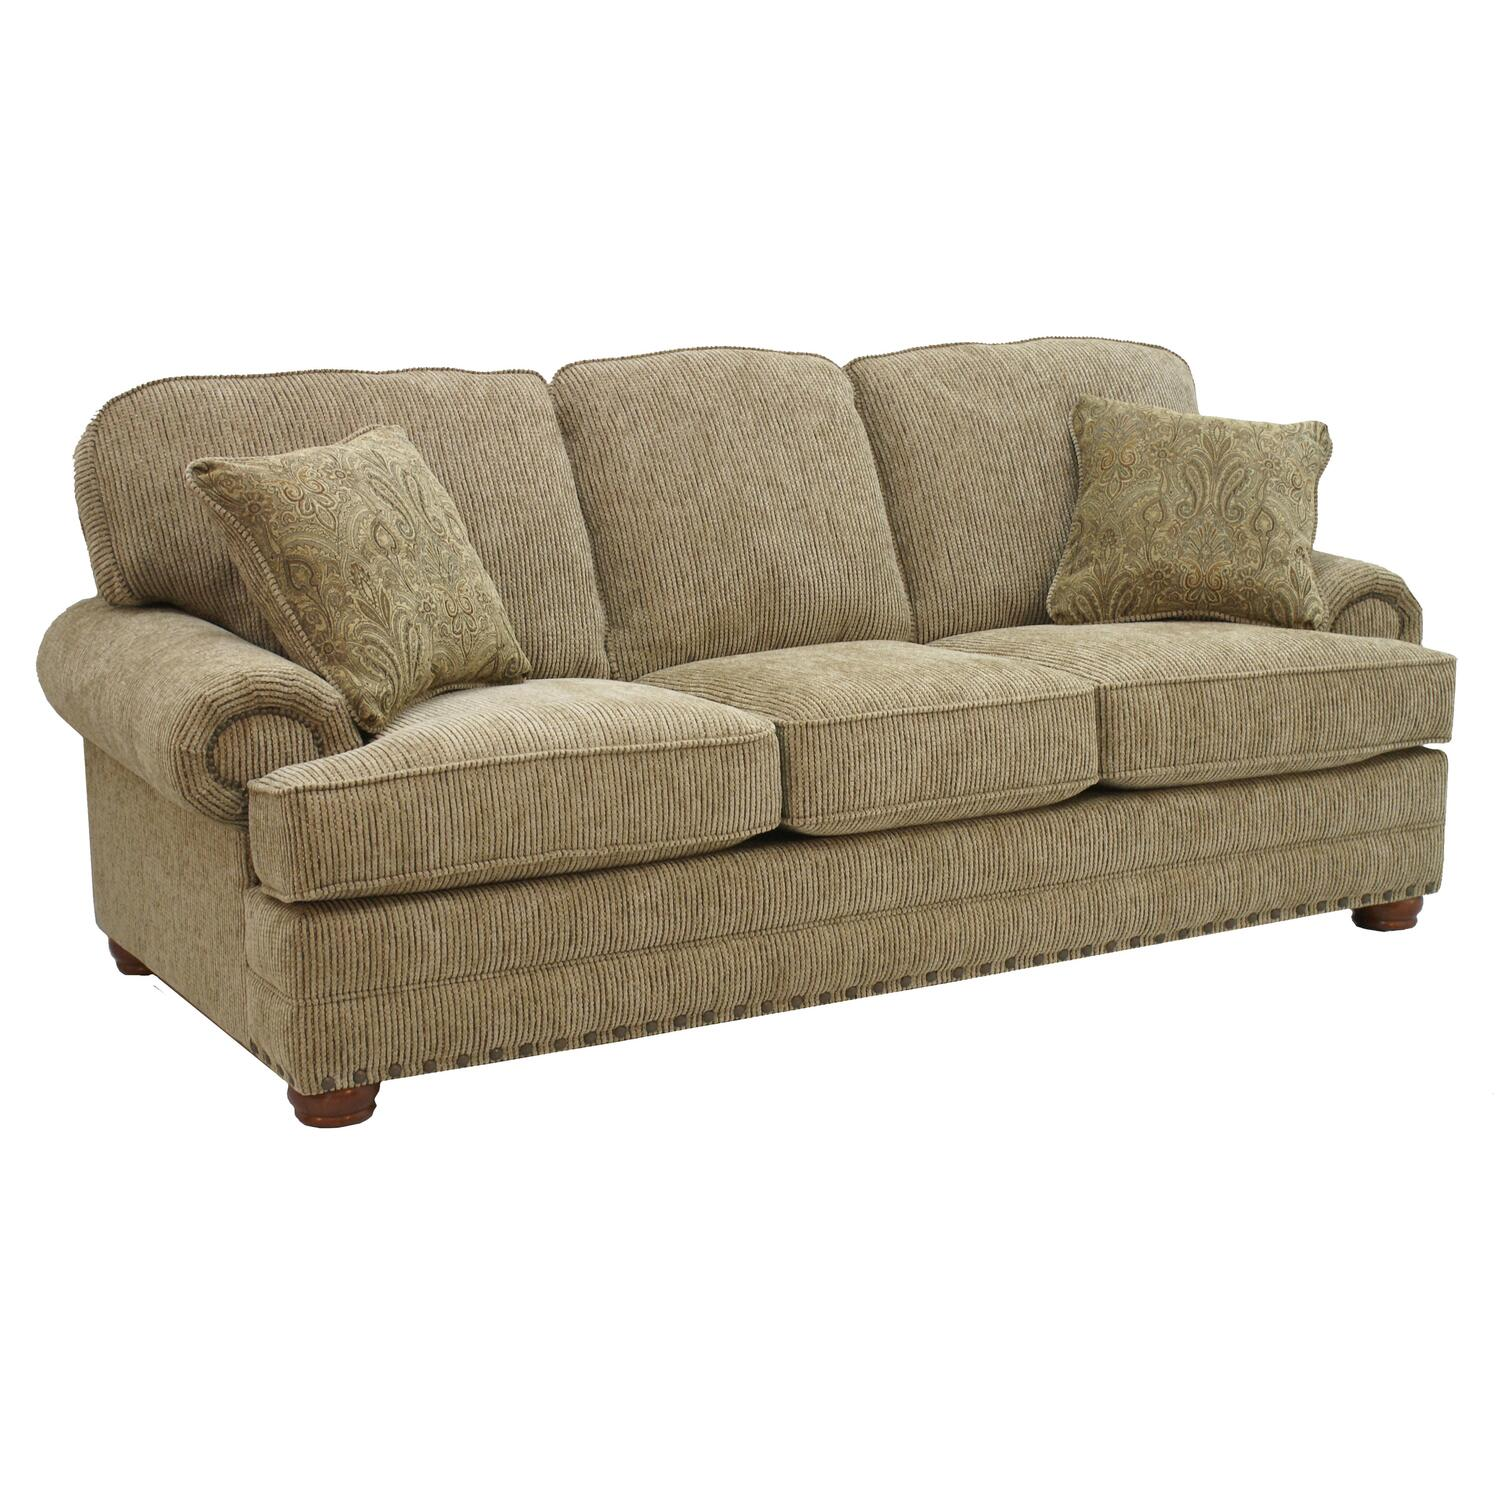 Jackson Furniture Bradford Sofa By OJ Commerce 4293 03